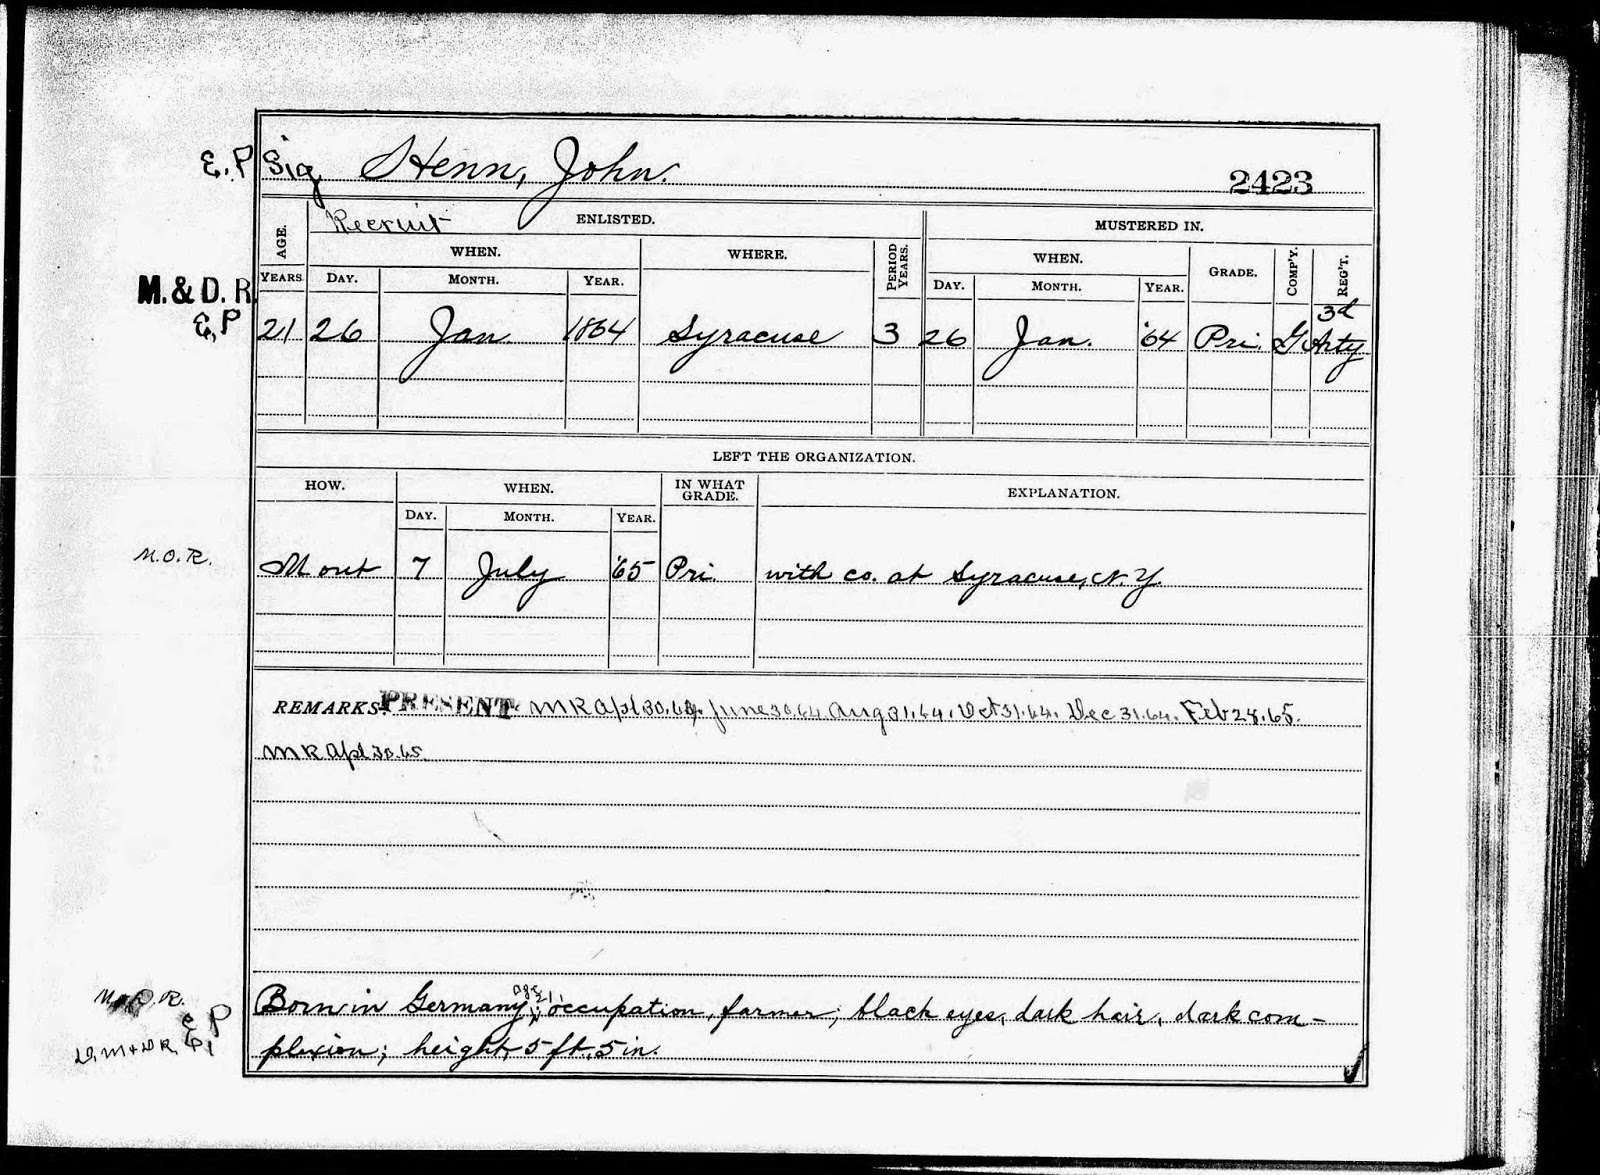 Climbing My Family Tree: John Henn New York, Civil War Abstract, Muster Roll